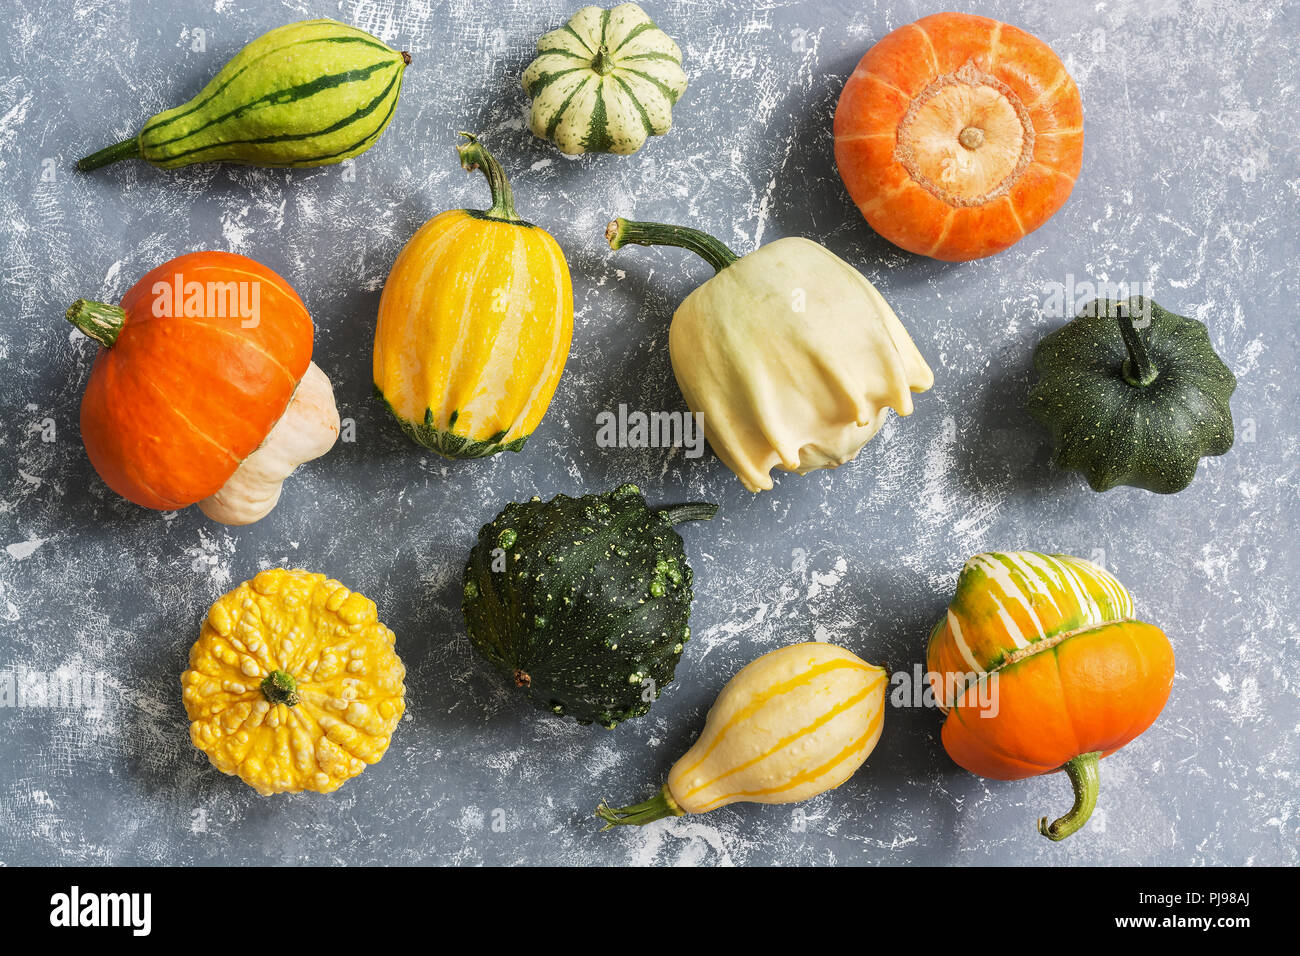 A variety of colorful pumpkins on a gray background, view from above. Flat lay - Stock Image